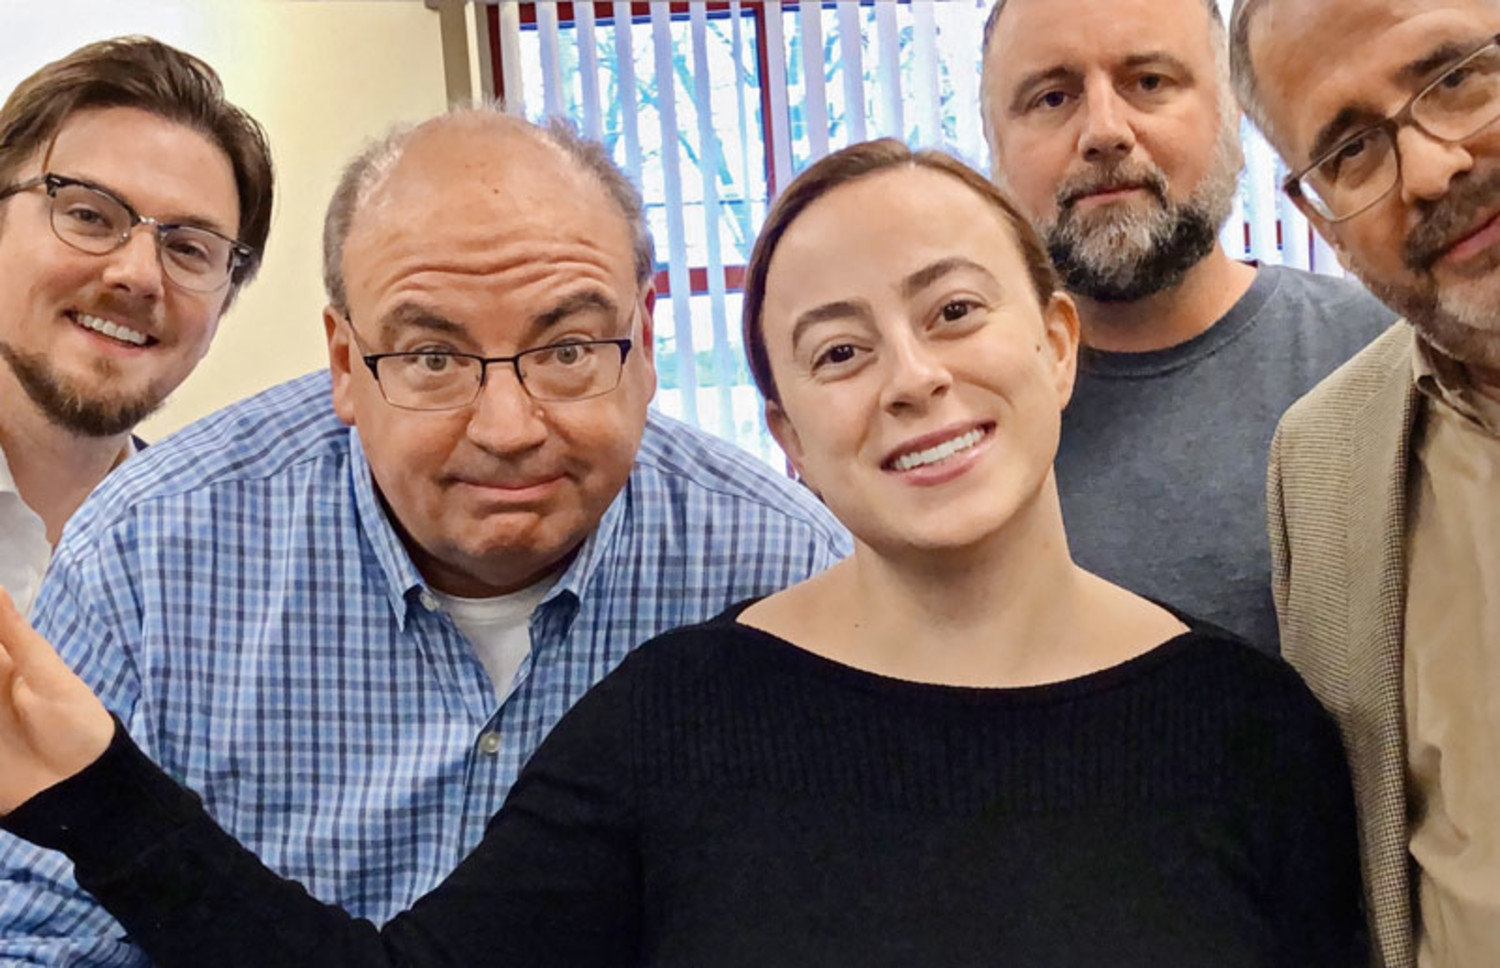 The Mahoning Matters staff in December 2019: (from left) reporter Justin Dennis, editor Mark Sweetwood, reporter Jess Hardin, content manager Jeremy Harper, and business executive Mark Eckert. Eckert died from complications of COVID-19 in March. (Photo provided)